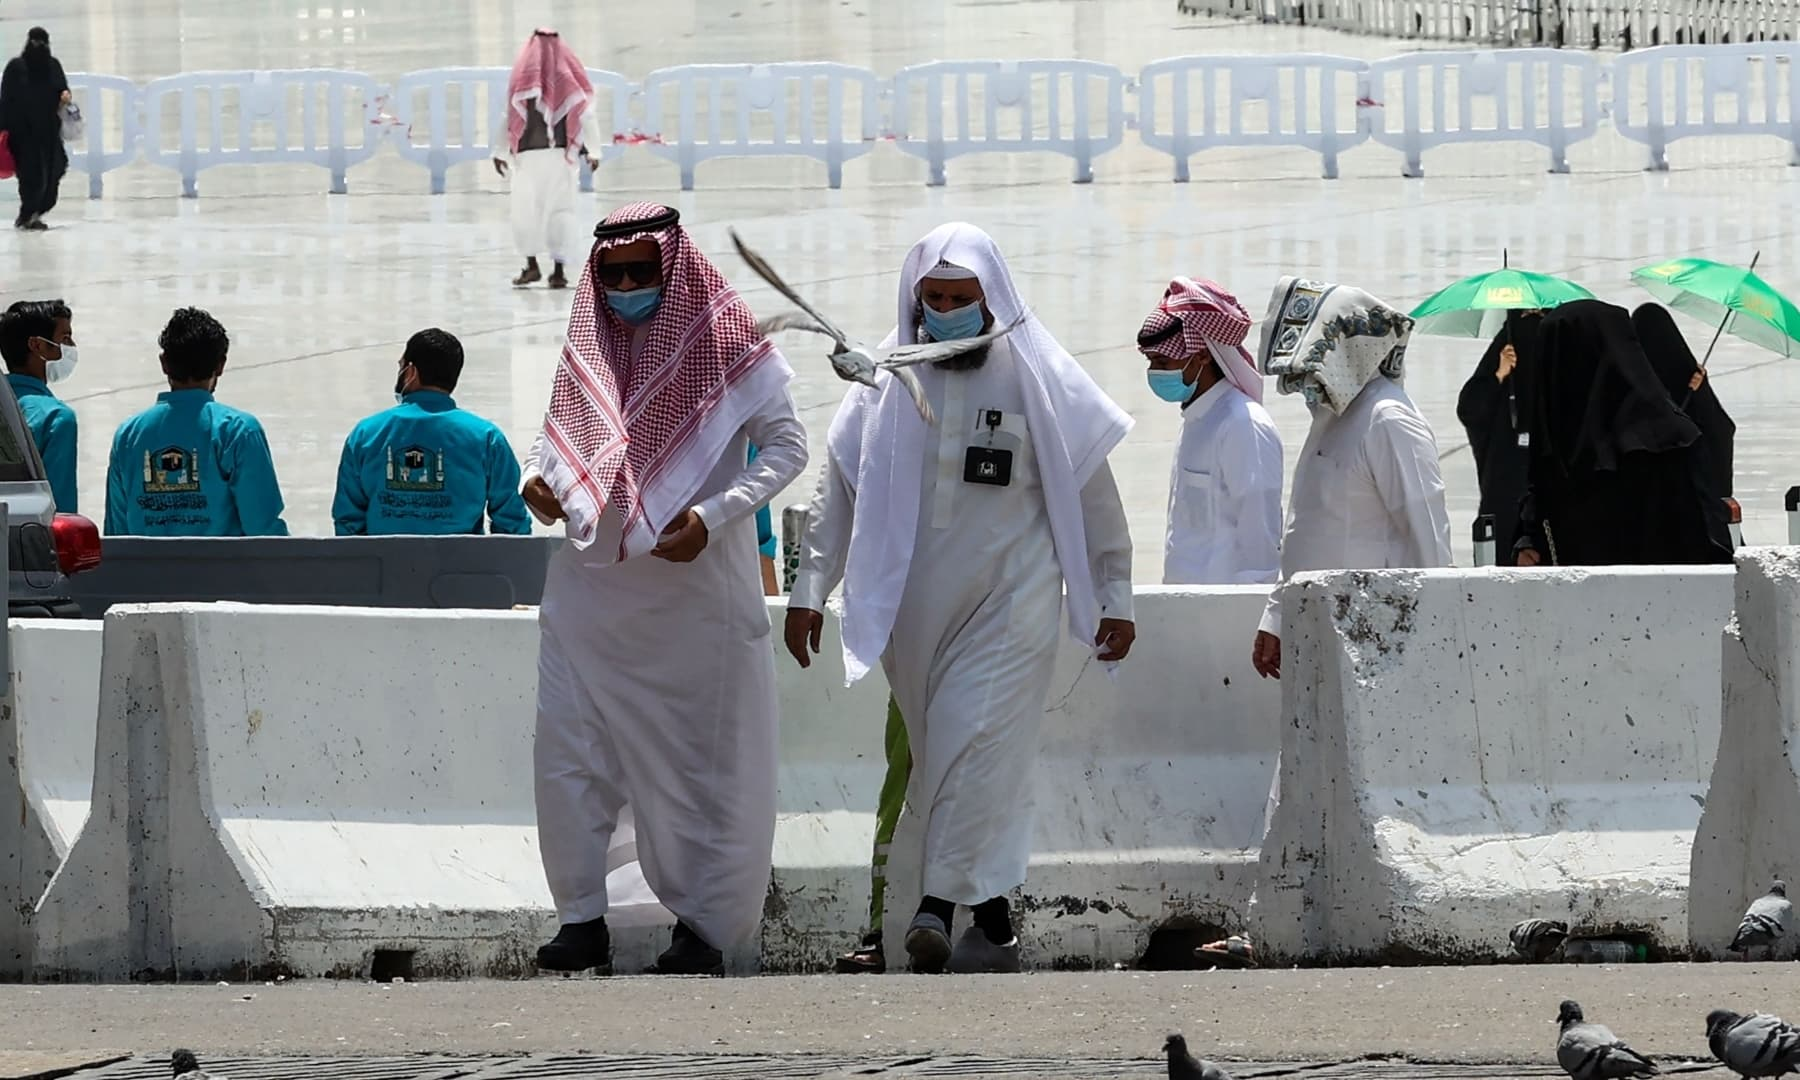 Pilgrims are pictured in the holy city of Makkah, Saudi Arabia, July 16, 2021. — AFP